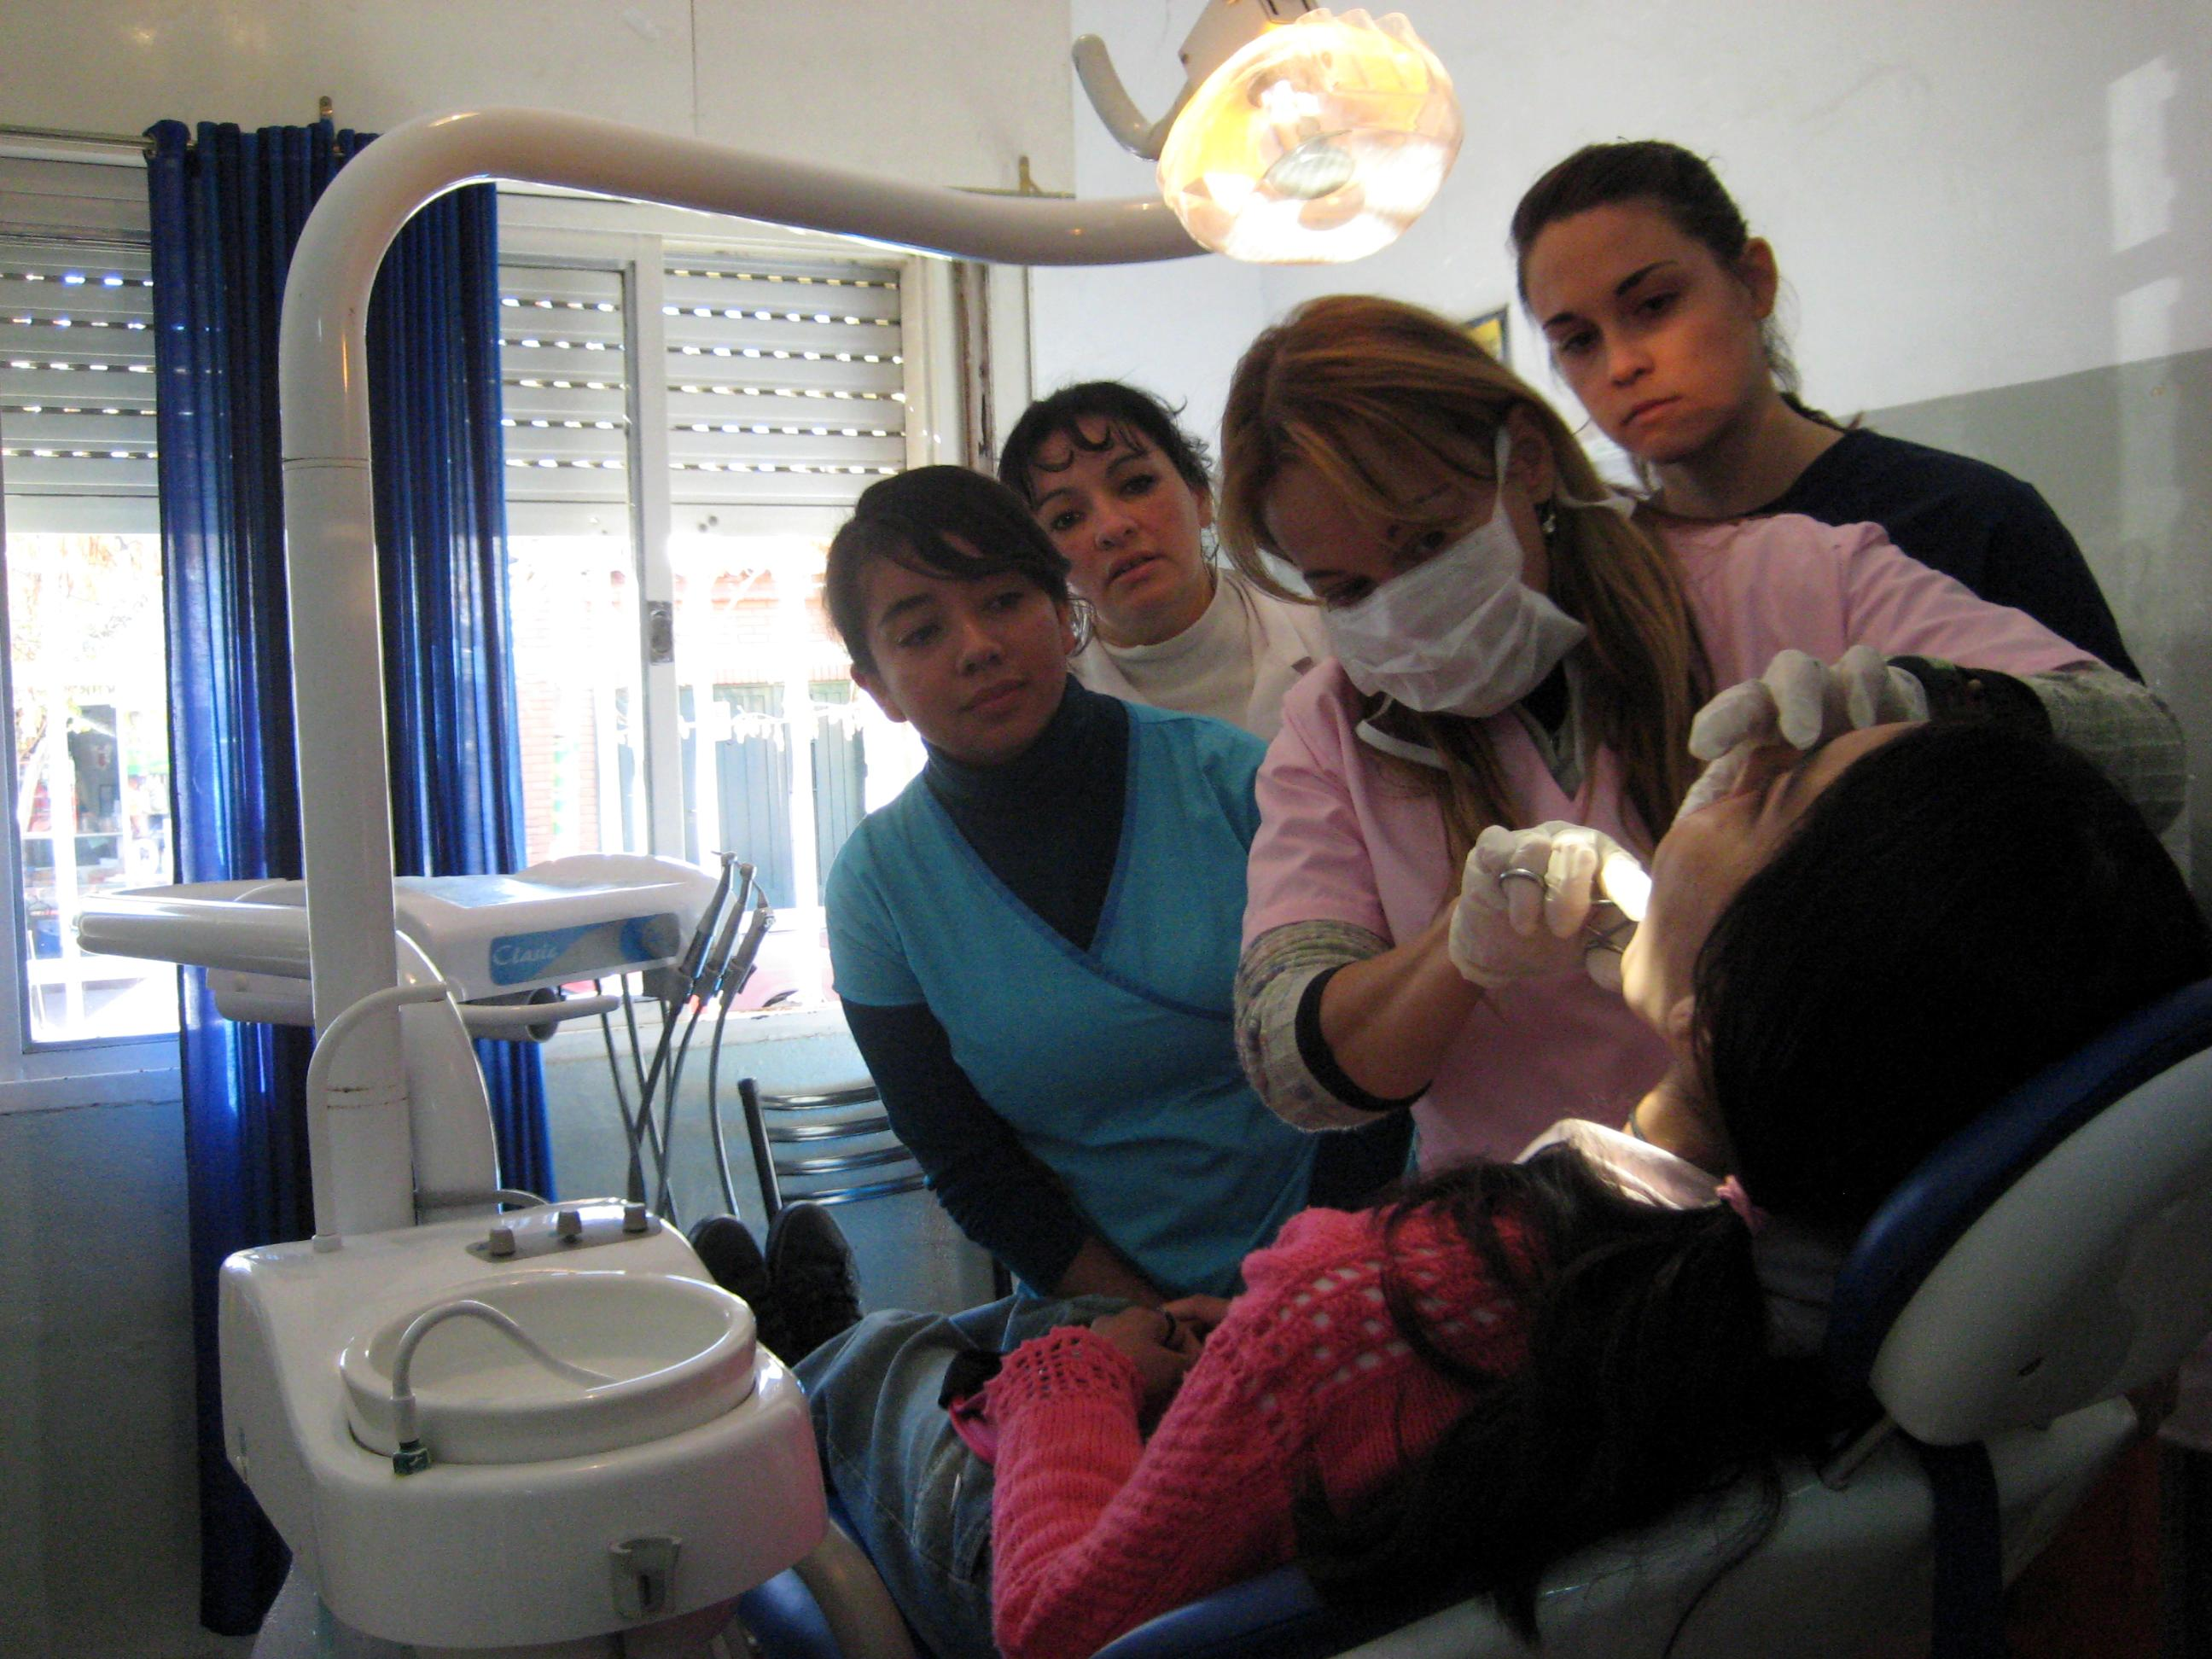 Projects Abroad Dentistry staff learn how to examine the patients mouth during Dentistry internships in Argentina.